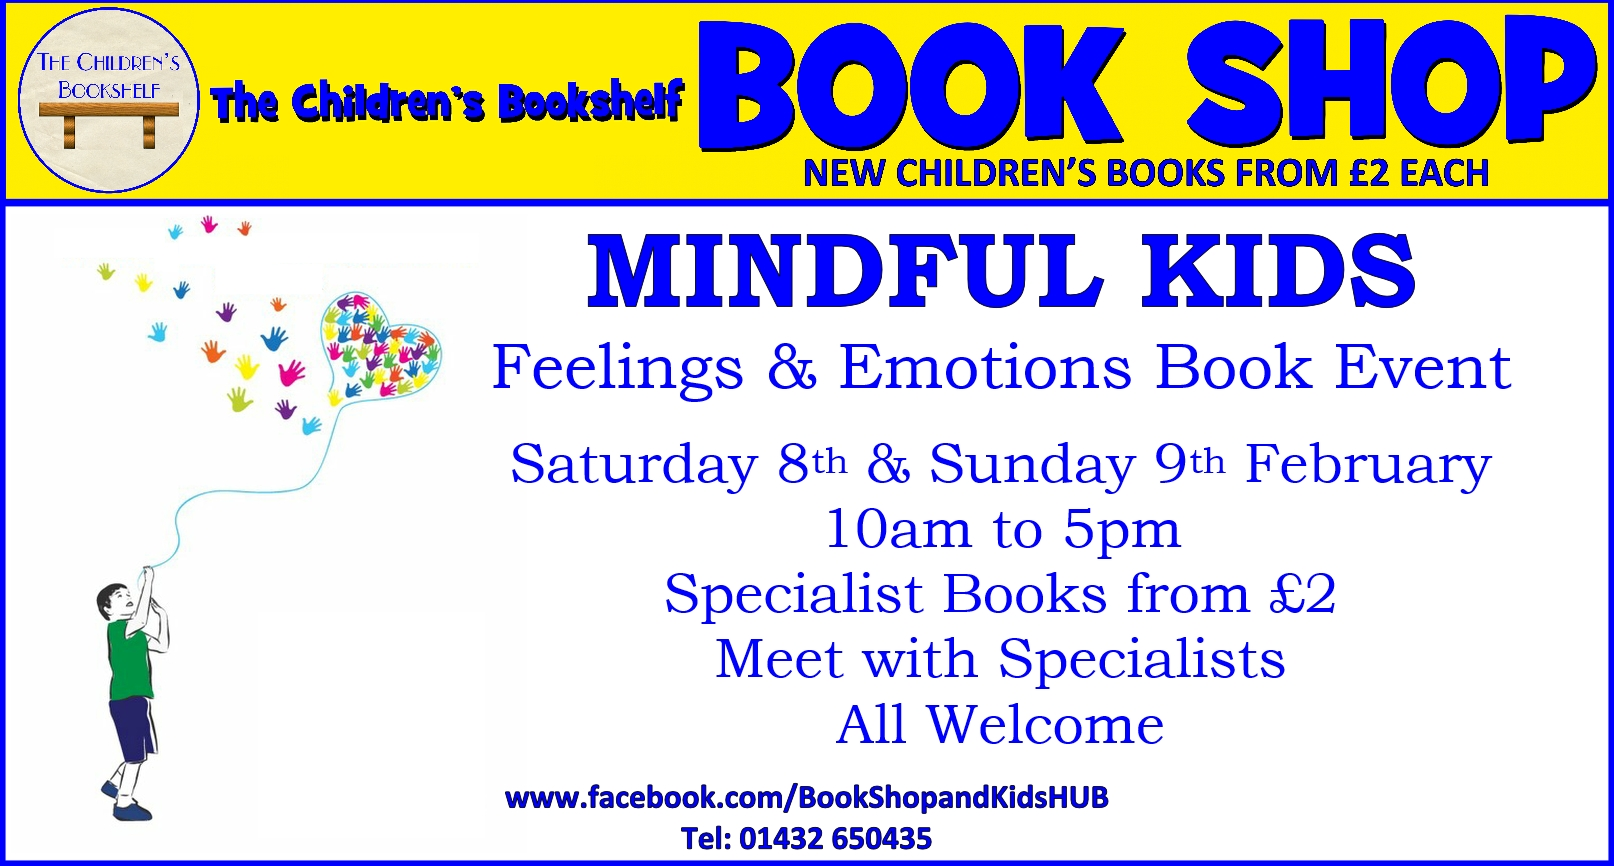 Mindful Kids - A Feelings & Emotions Book Event